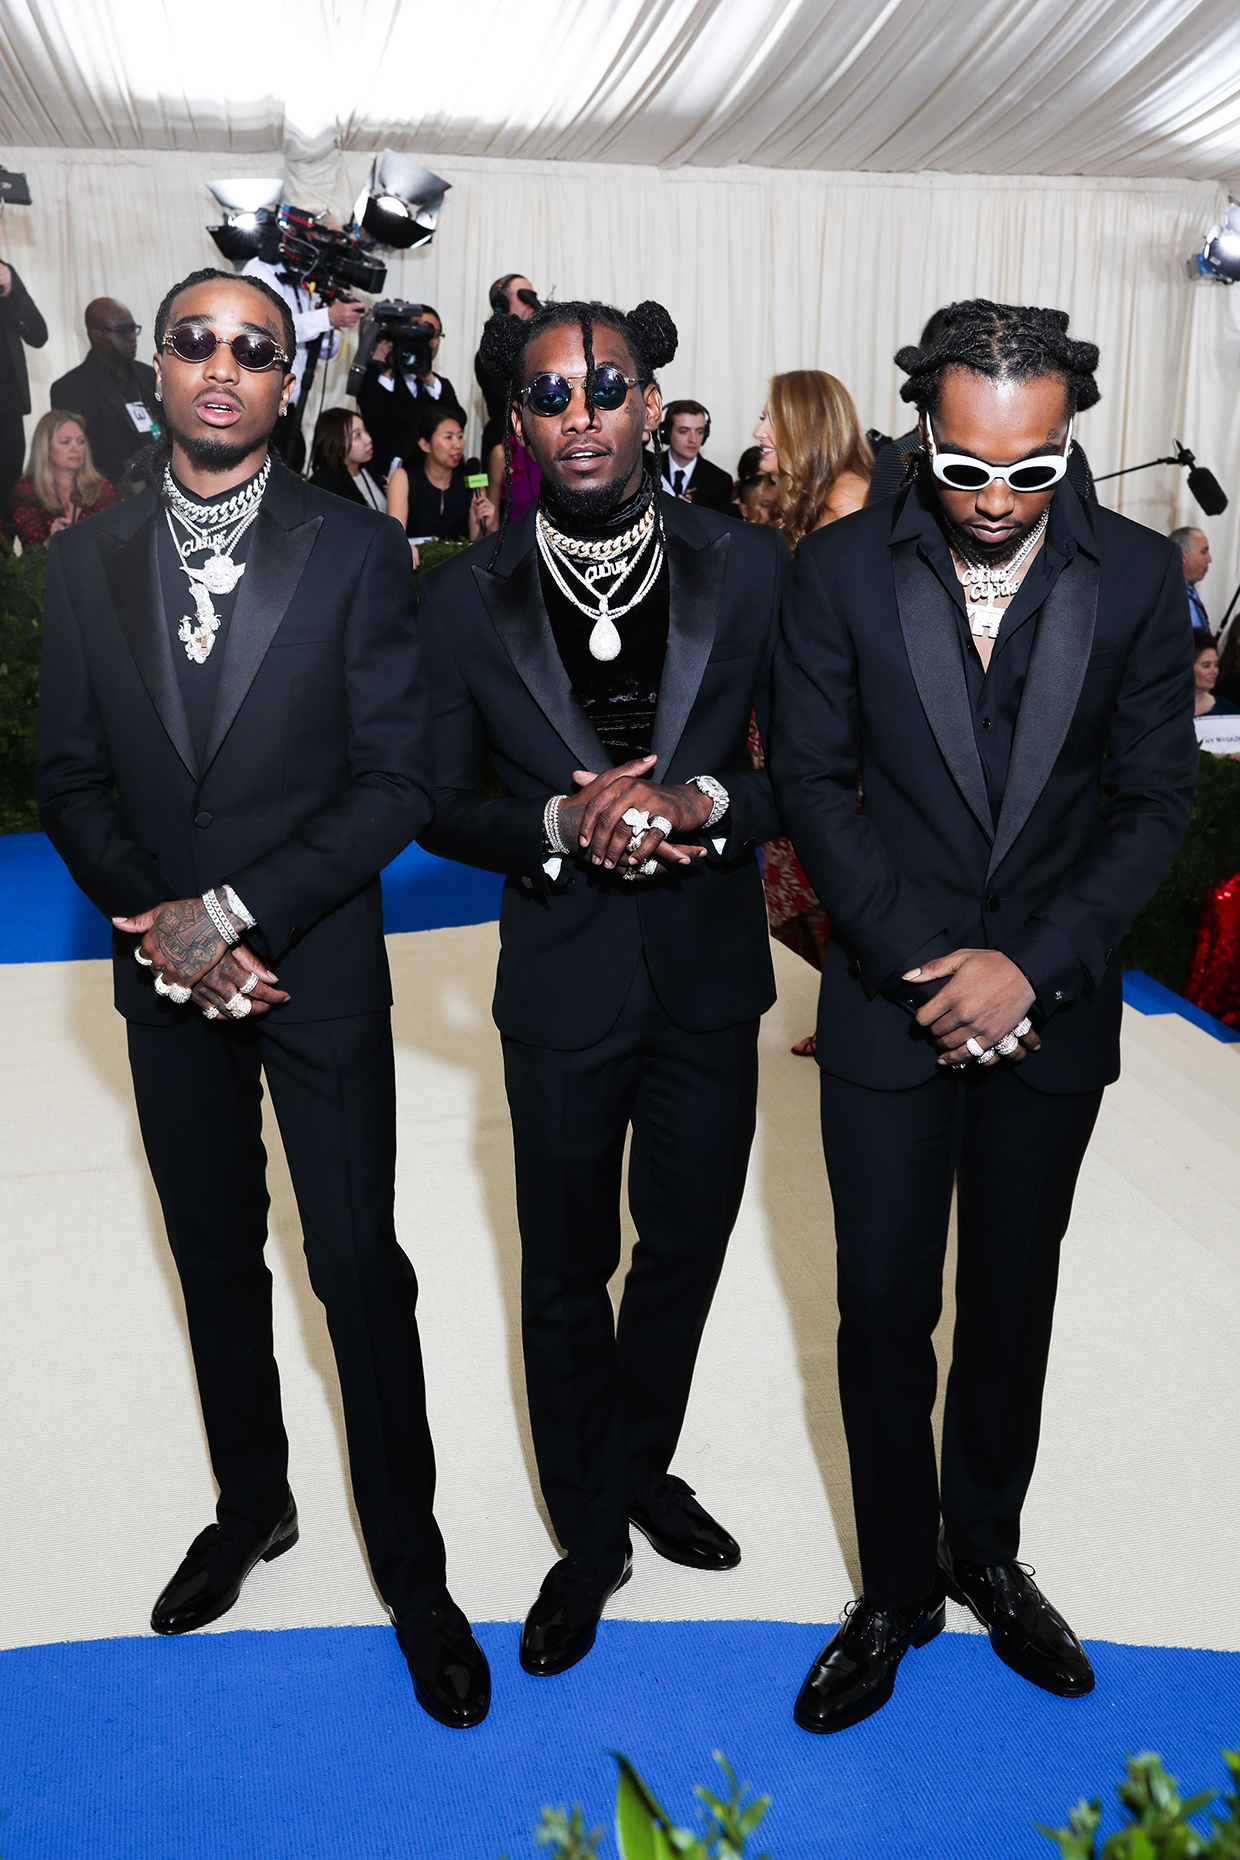 """Migos x """"Rei Kawakubo/Comme des Garcons: Art Of The In-Between"""" photo by Prutting/BFA/REX/Shutterstocl"""